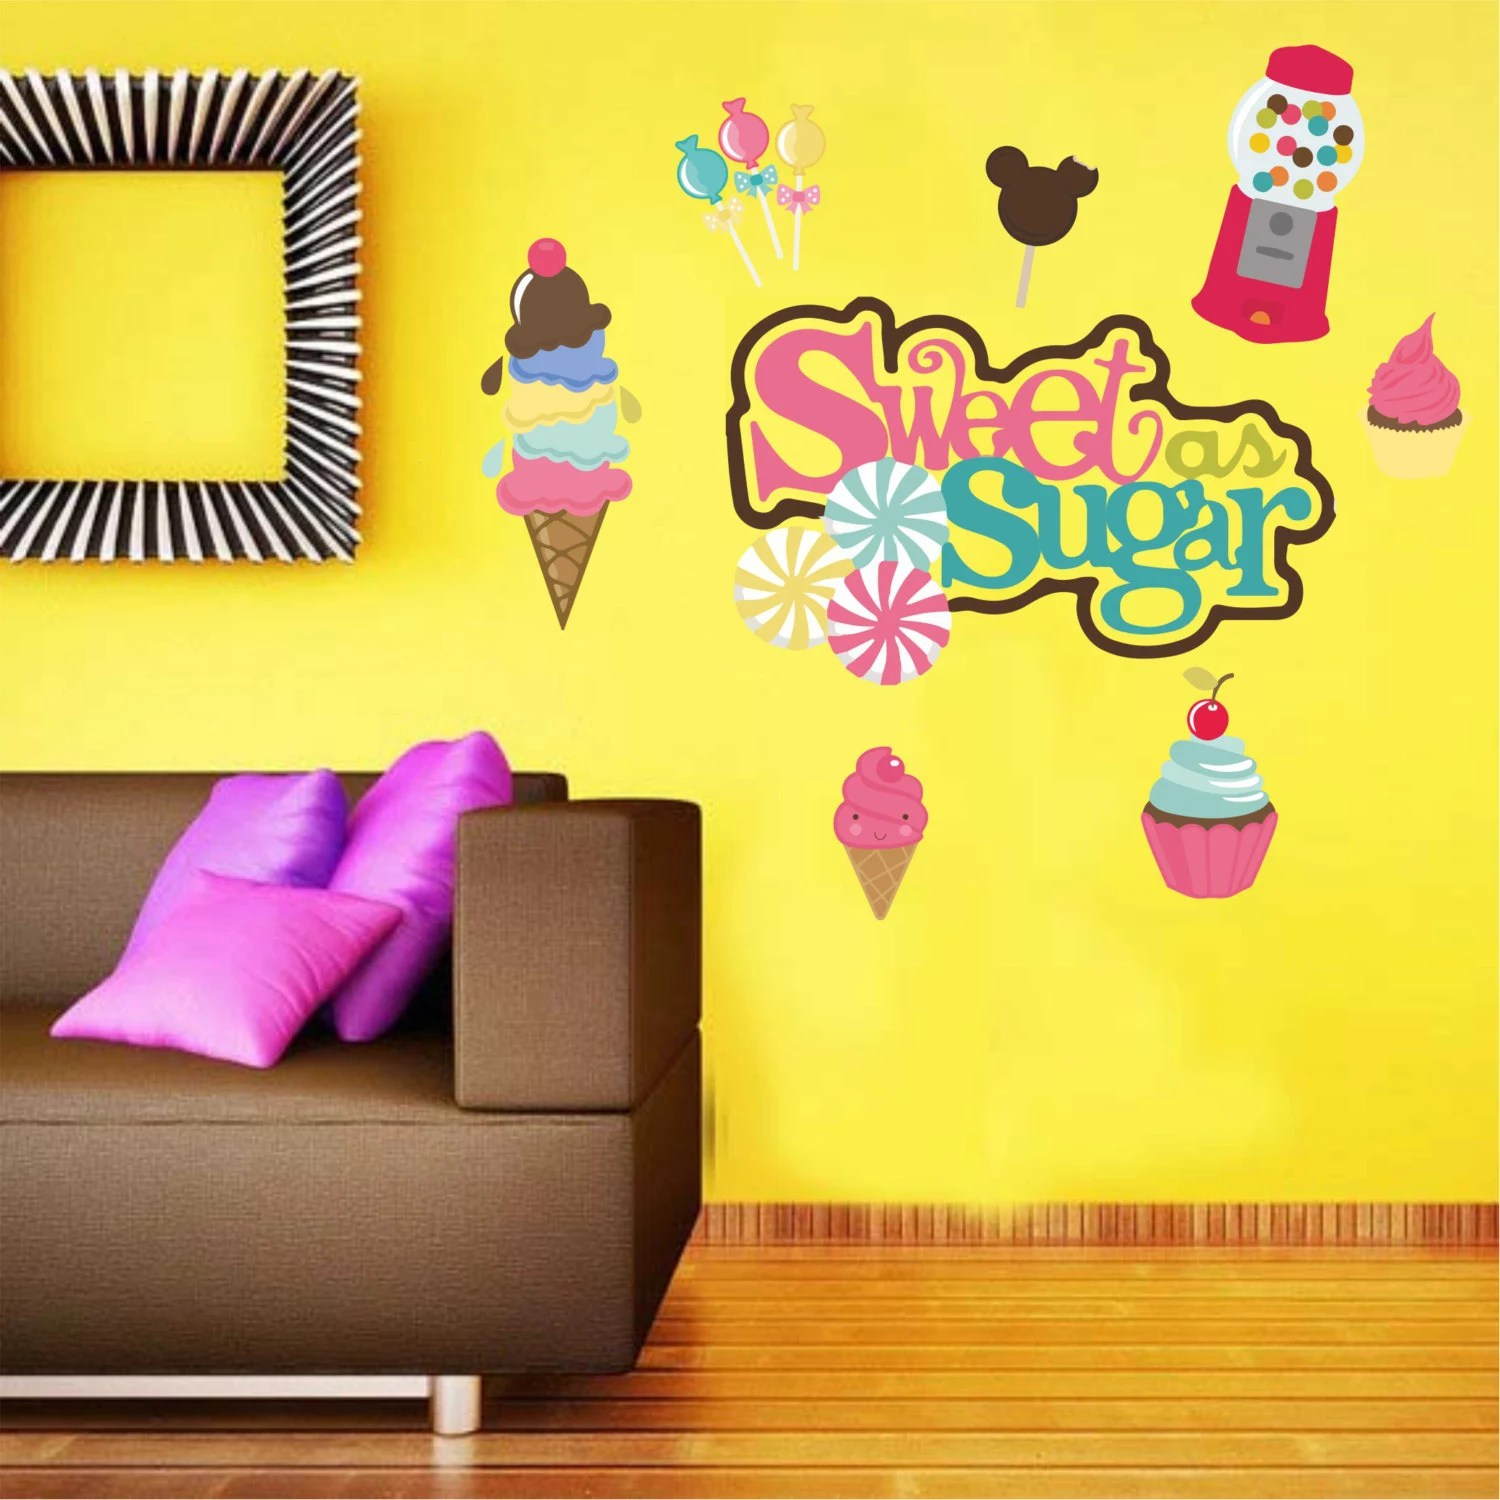 Ice Cream Wall Decal Candy Decal Sweet As Sugar Wall Decal